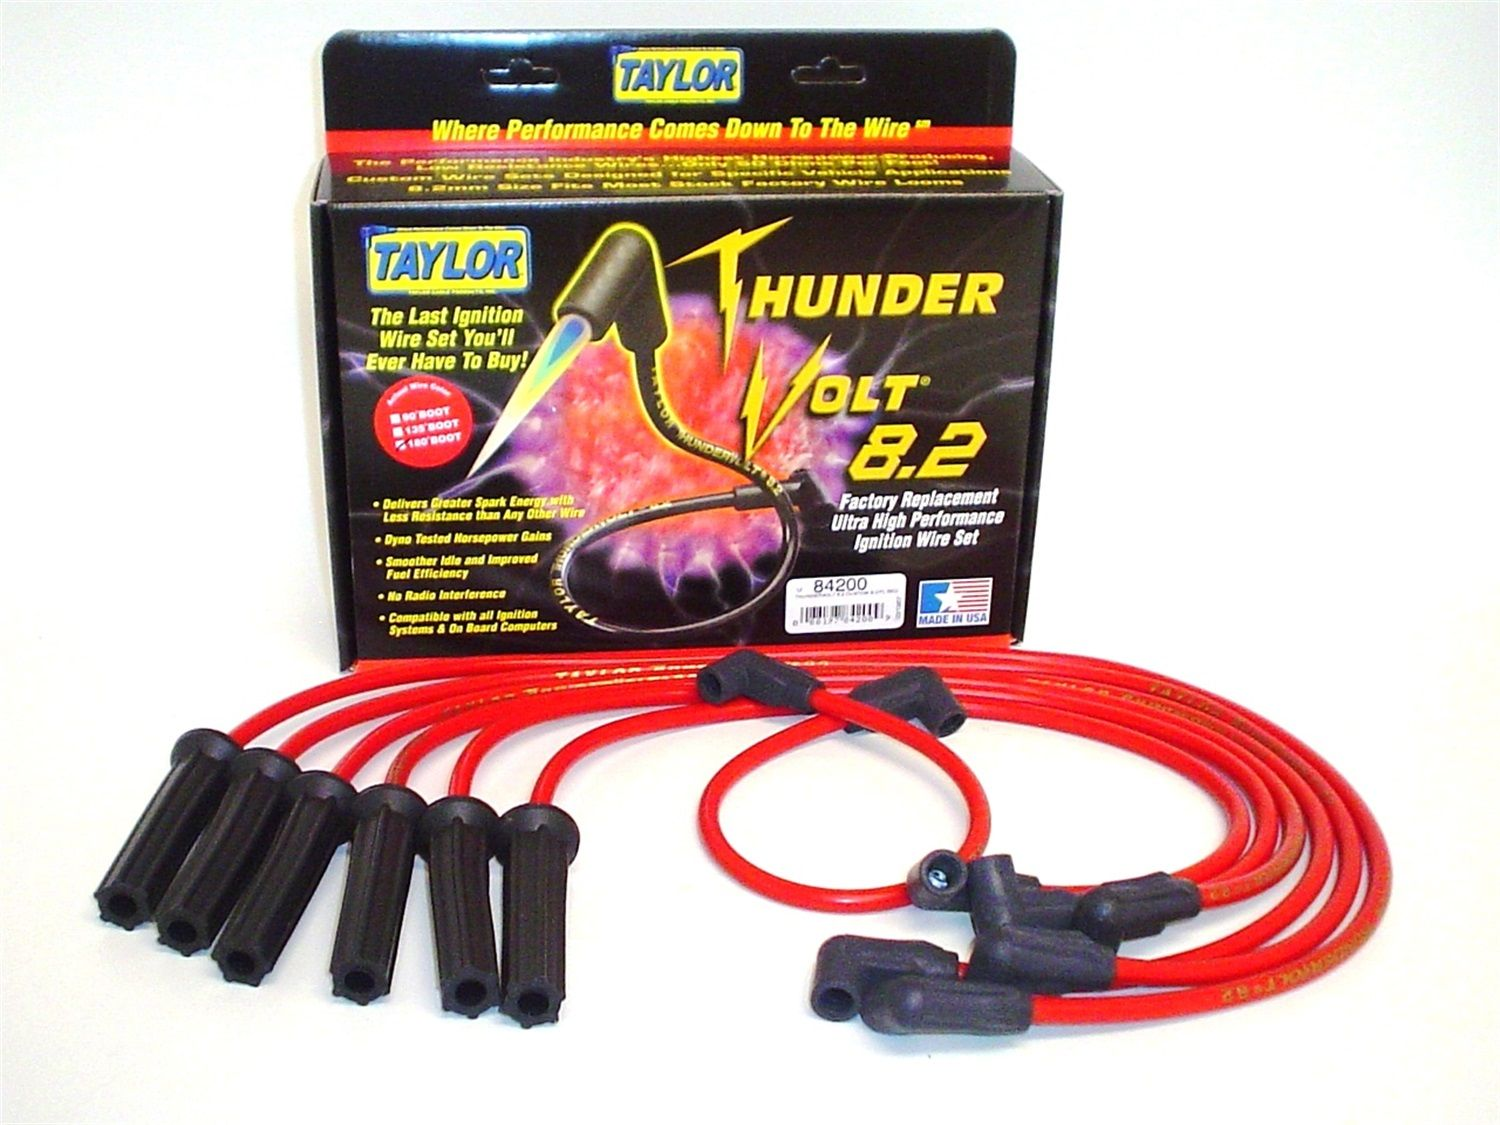 Taylor Spark Plug Wire Set 74600; Spiro Pro 8mm Blue for Chevy 6 Cylinder